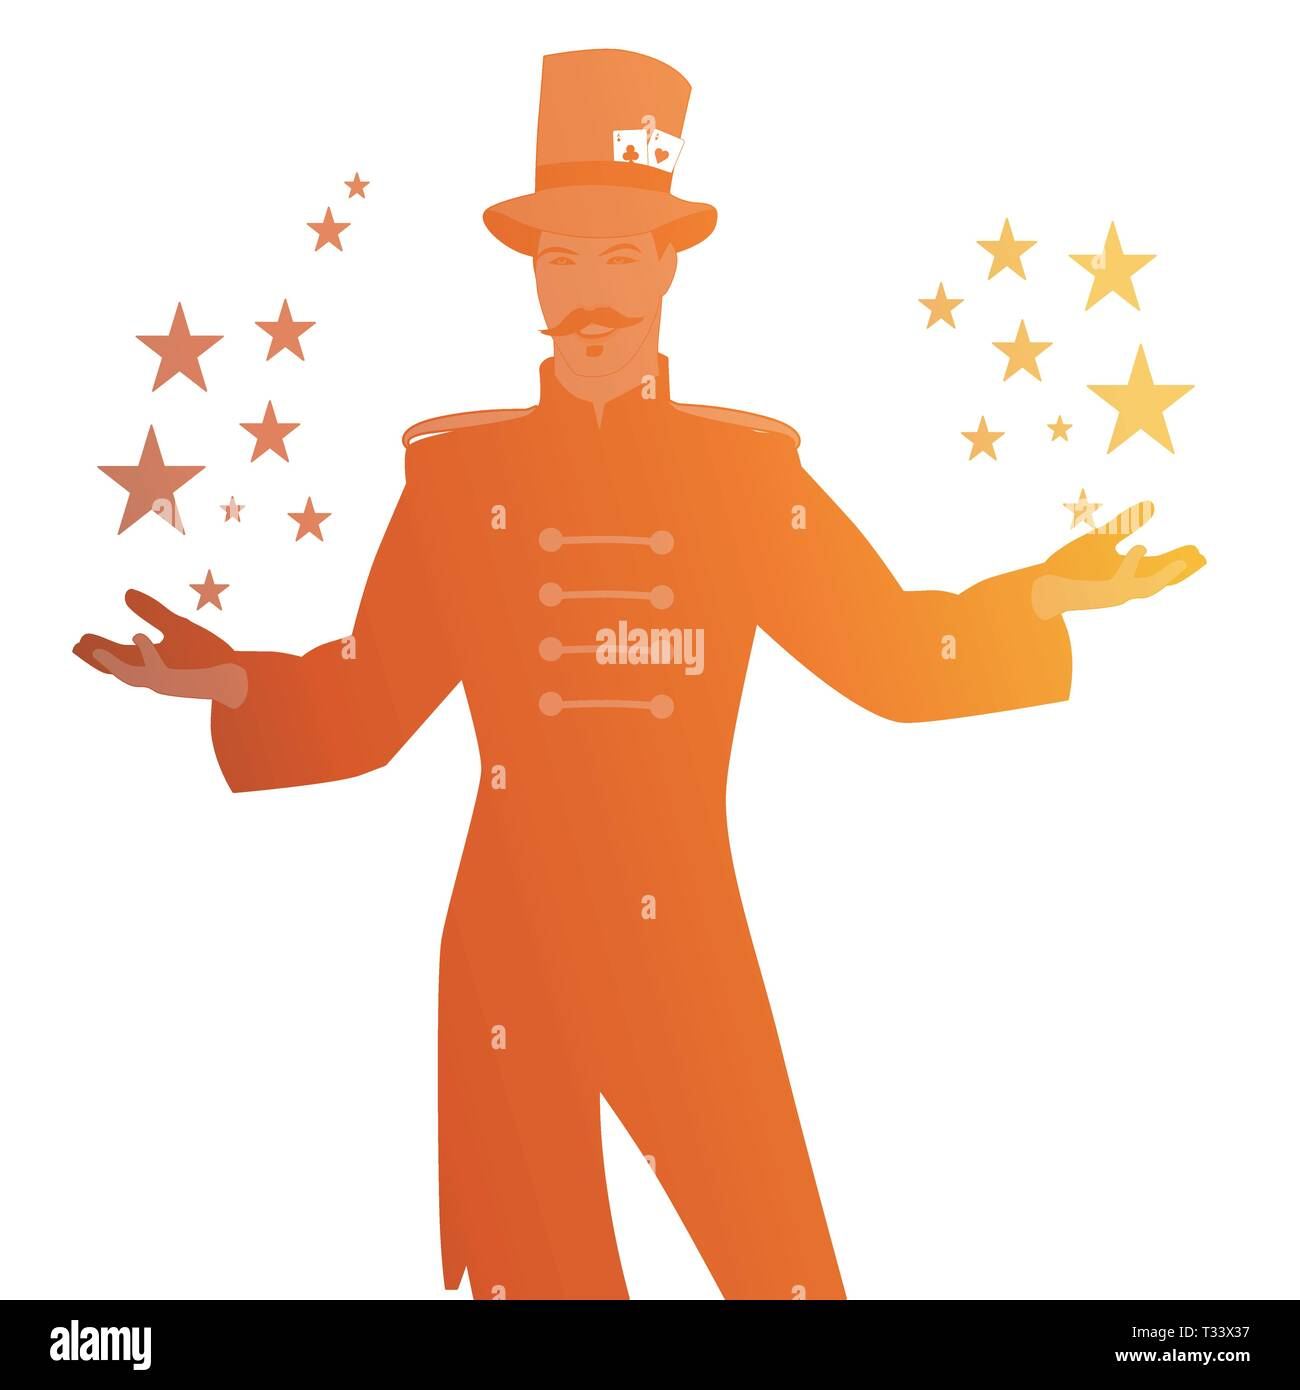 Silhouettes of master of ceremonies with mustache, wearing top hat adorned with playing cards, showing stars in his hands, isolated on white backgroun - Stock Image